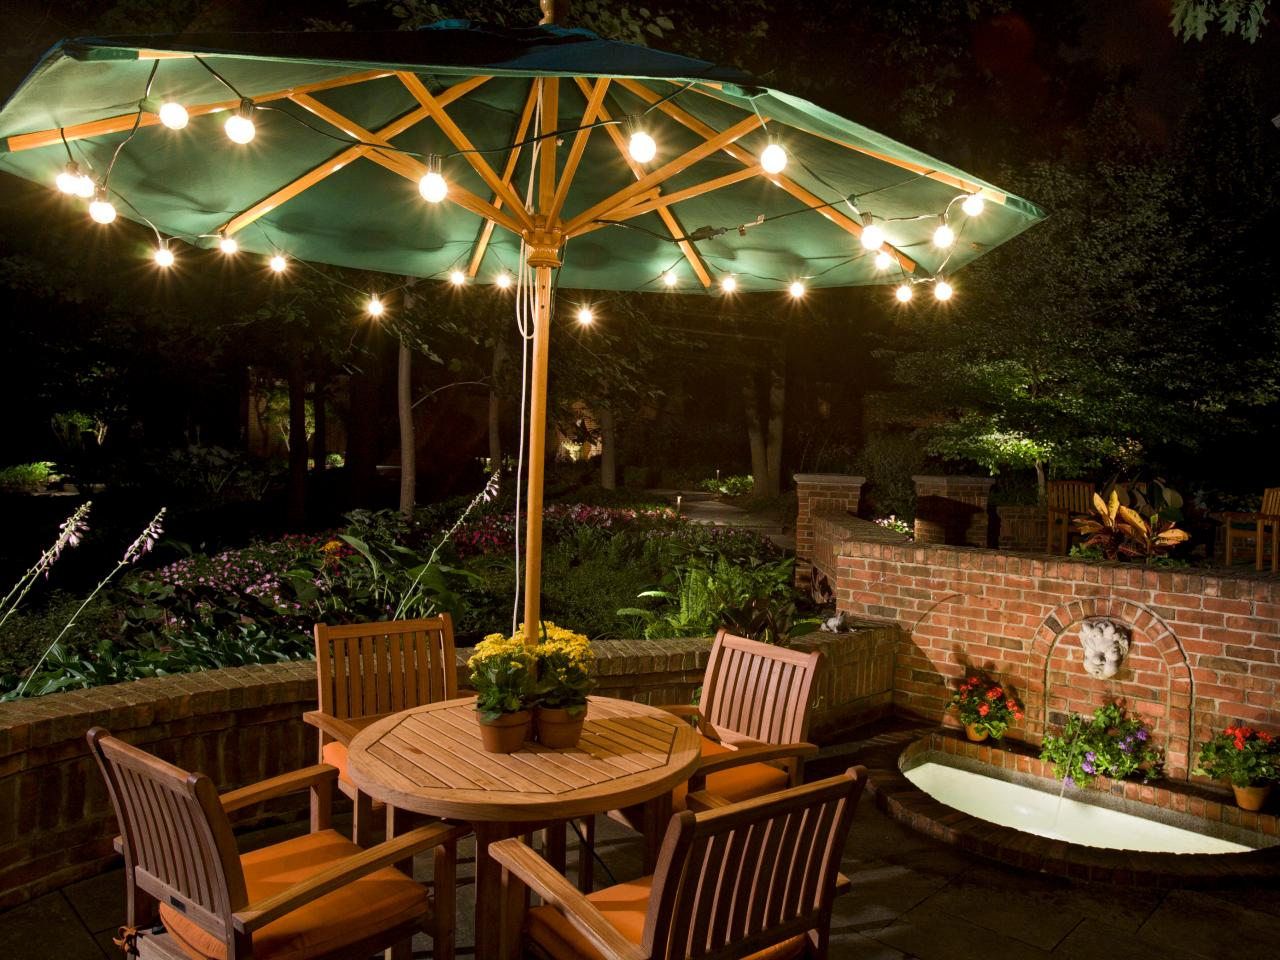 Exceptional Under An Umbrella. Inexpensive Party Lights Give Patio ...